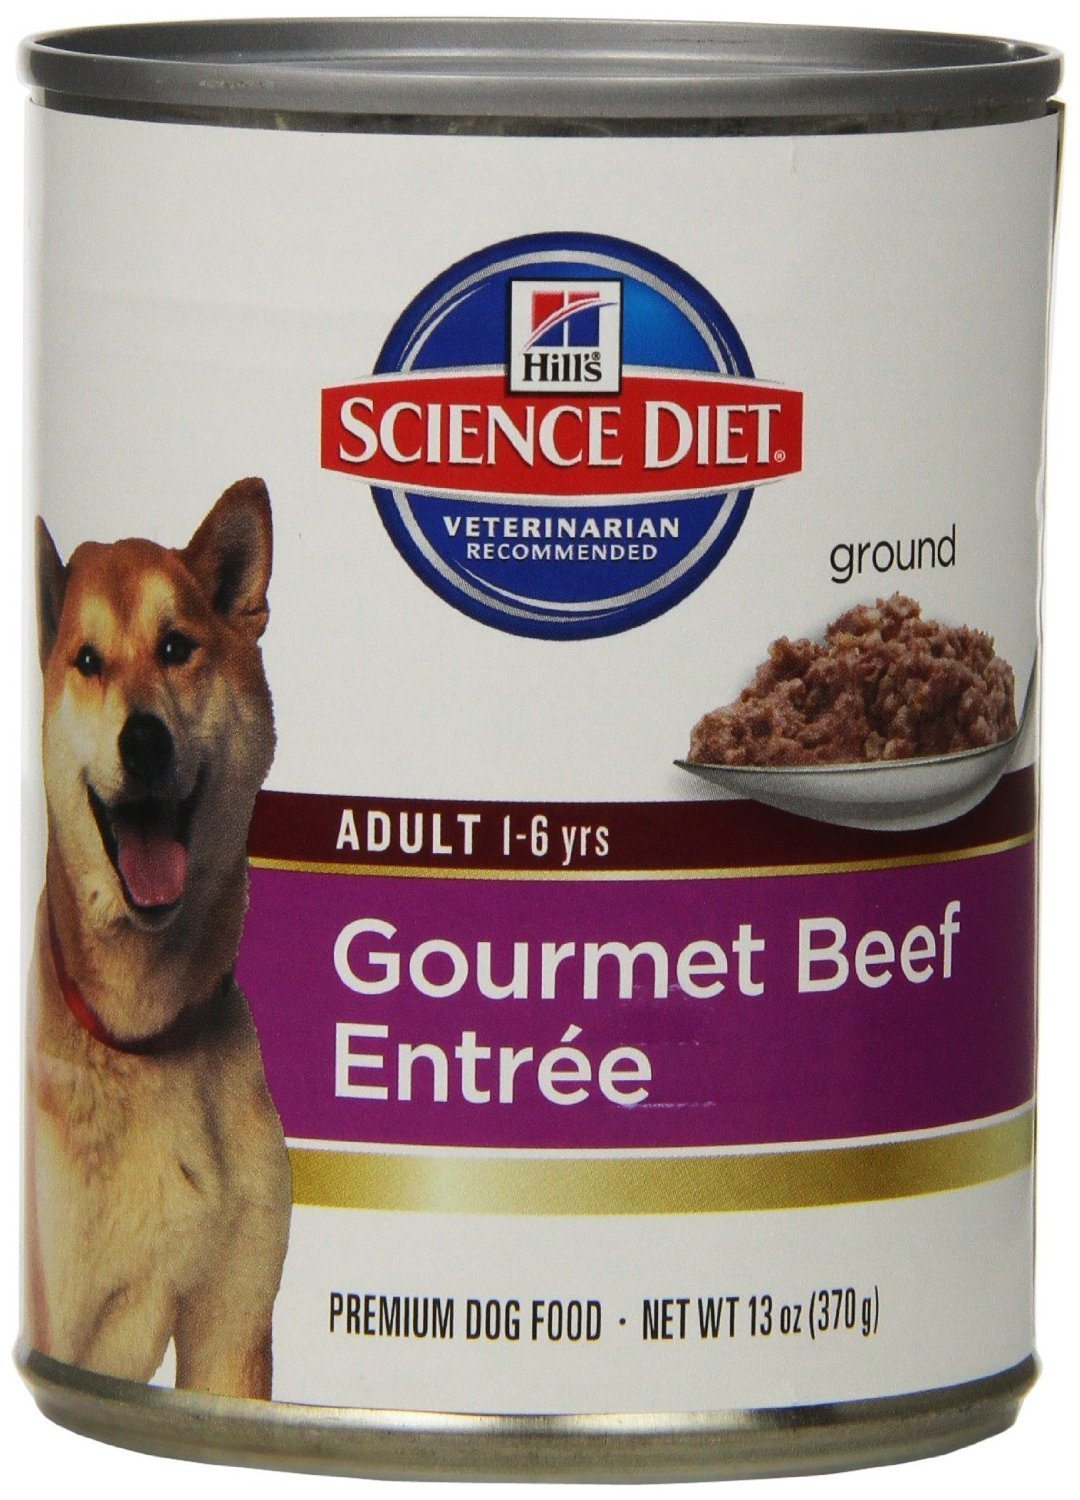 Hill's Science Beef Dog Food